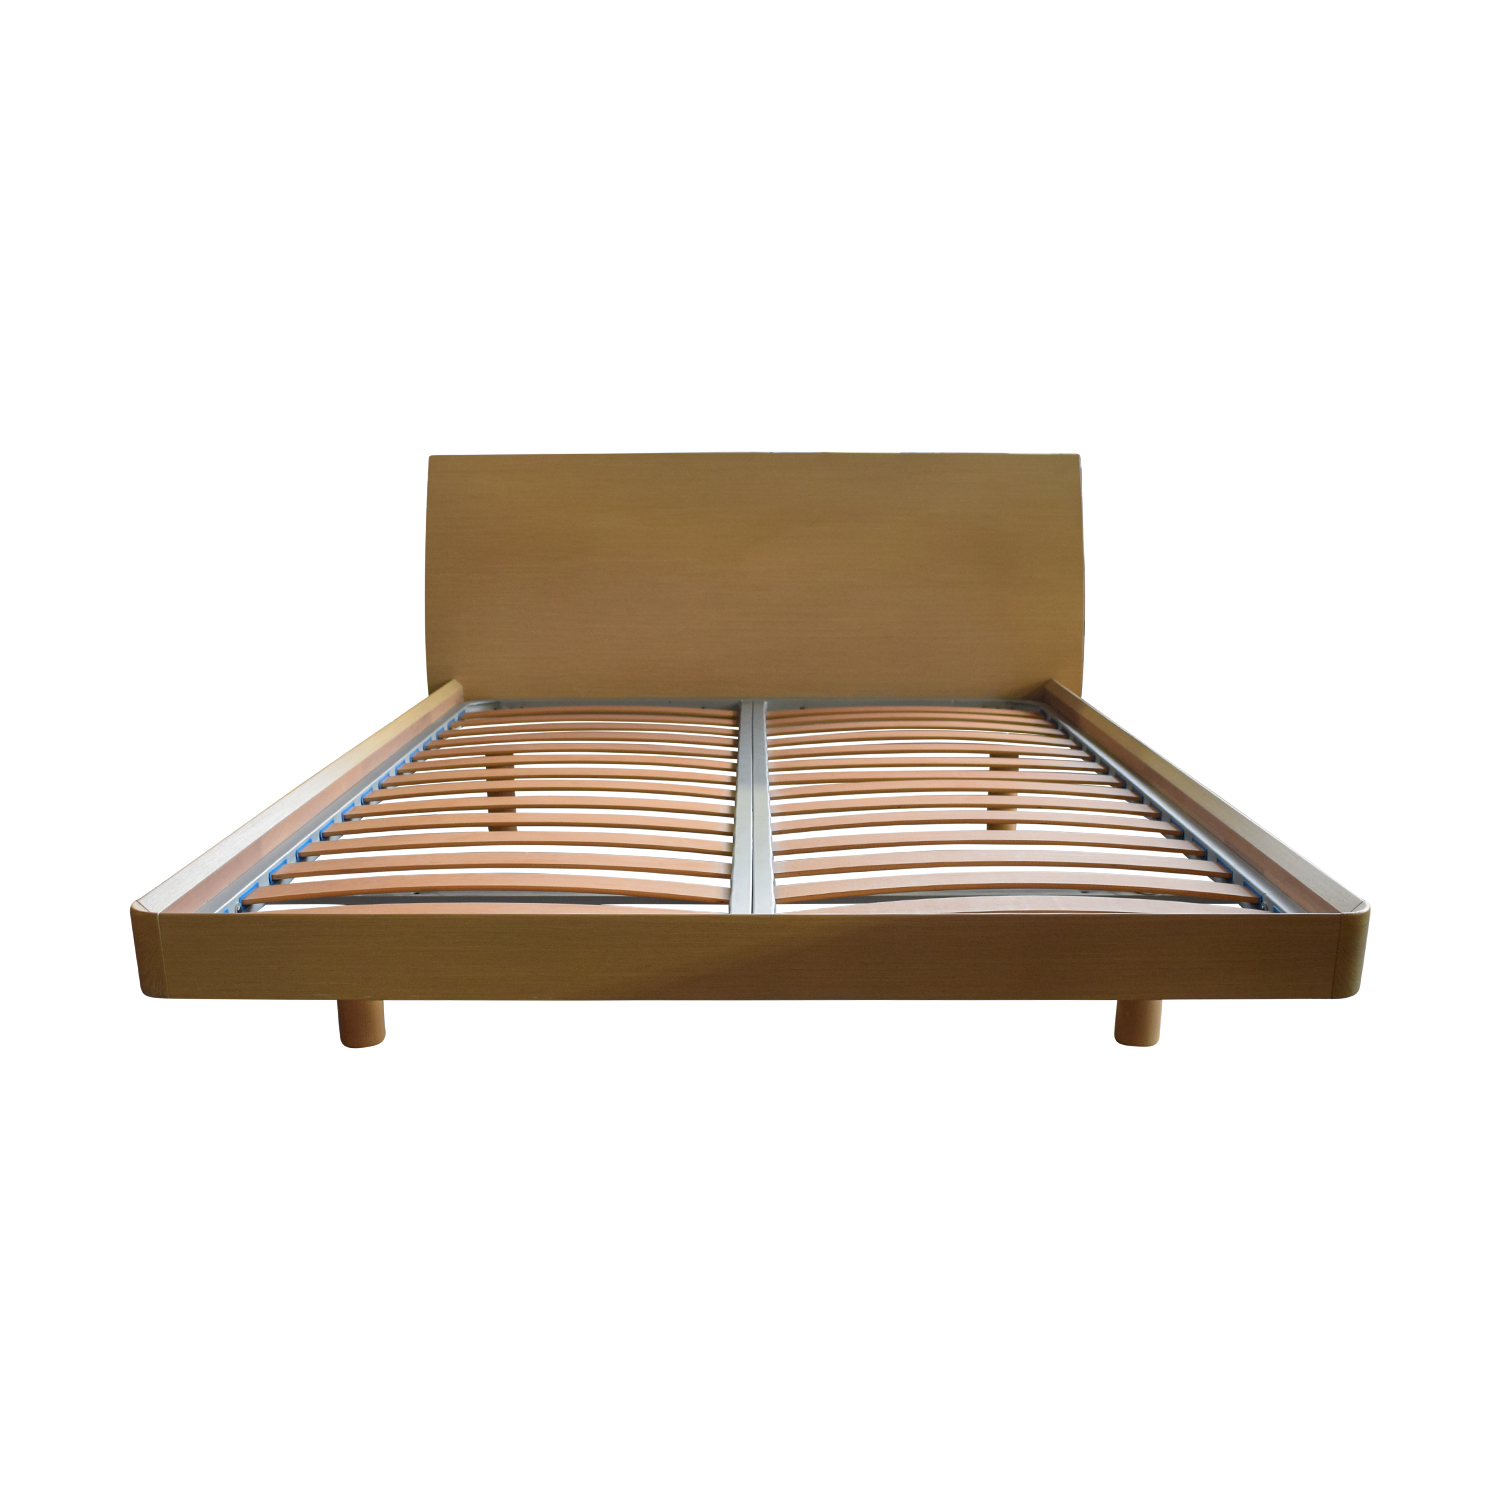 Jesse  Furniture Jesse  Furniture Wood Queen Platform Bed dimensions